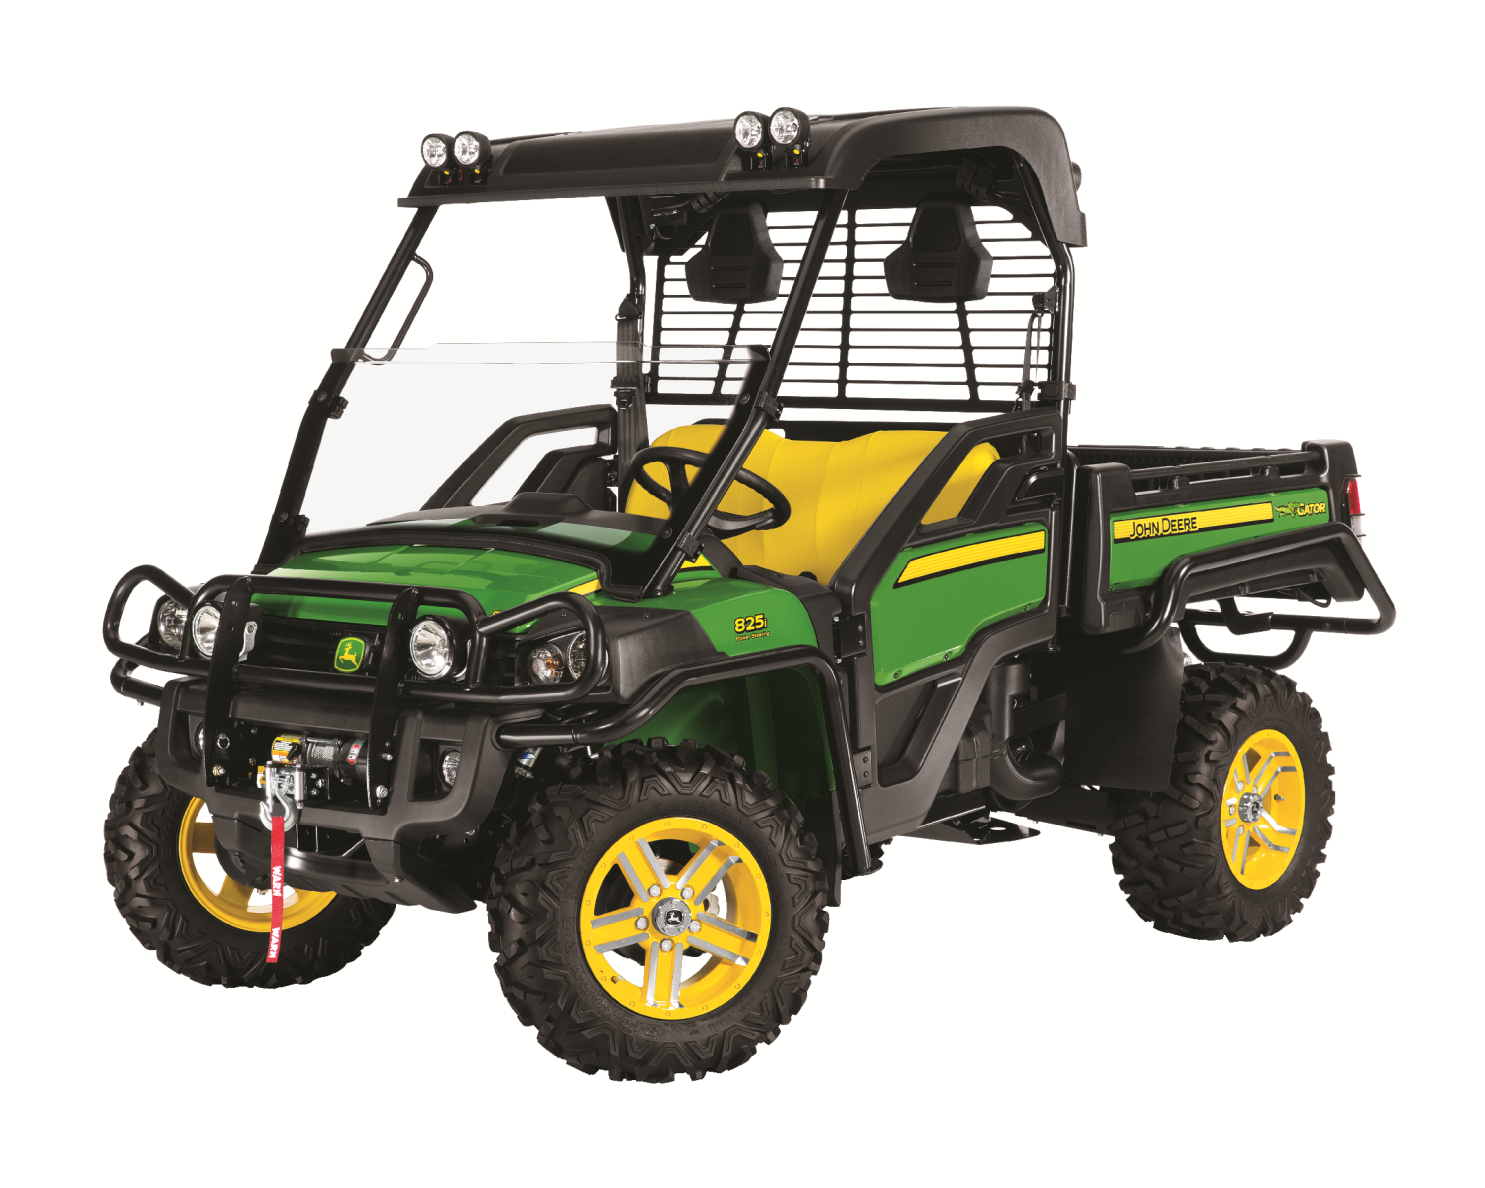 XUV 825i Gator Utility Vehicle with Power Steering